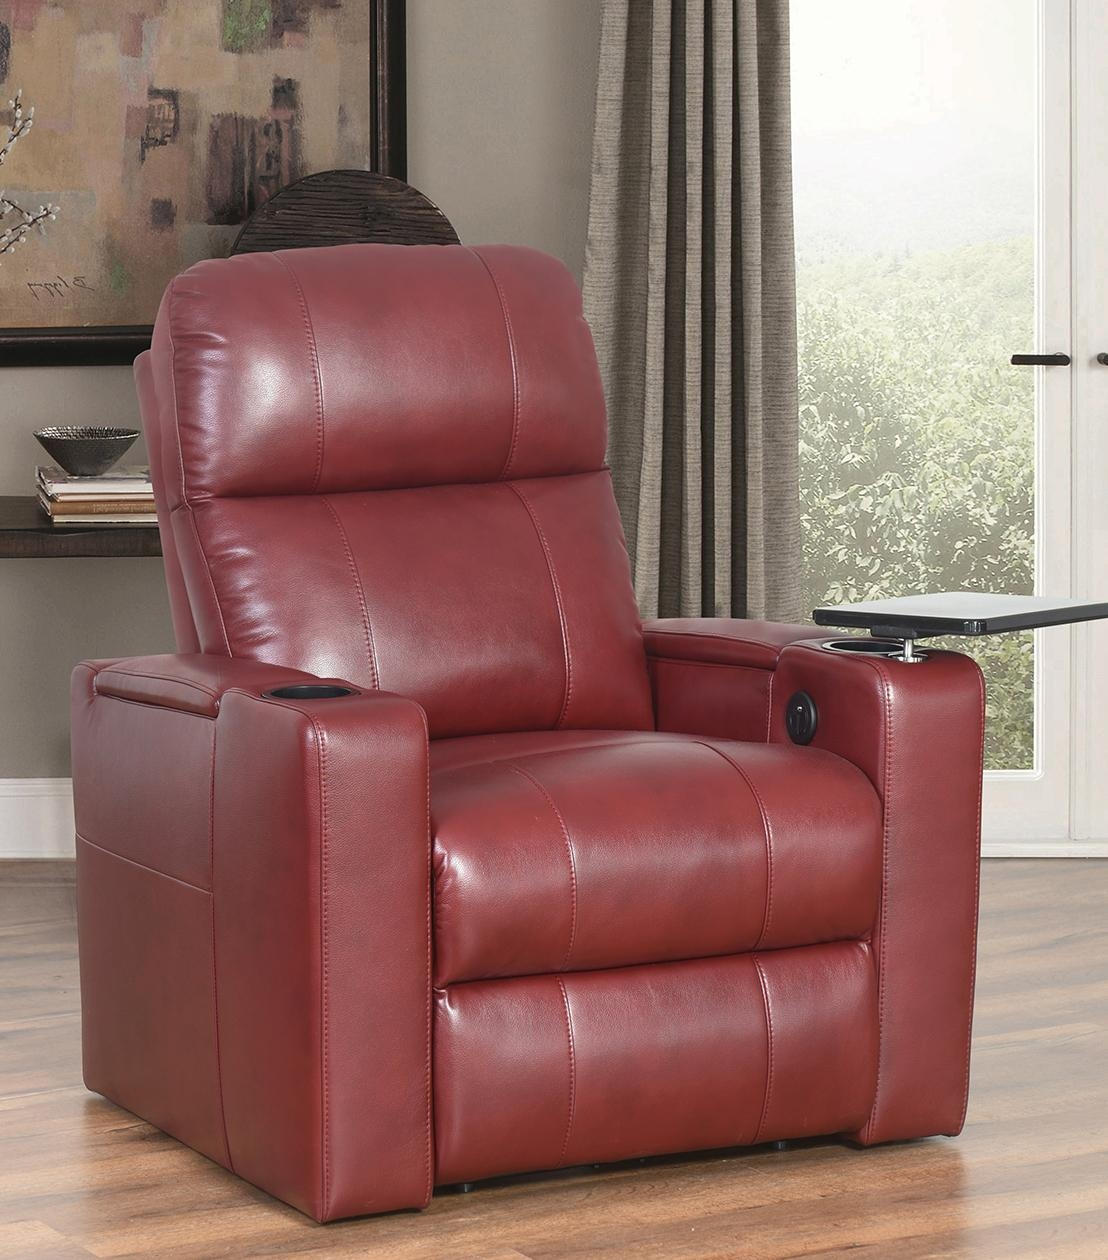 Recliners In Abbyson Recliners (View 3 of 20)